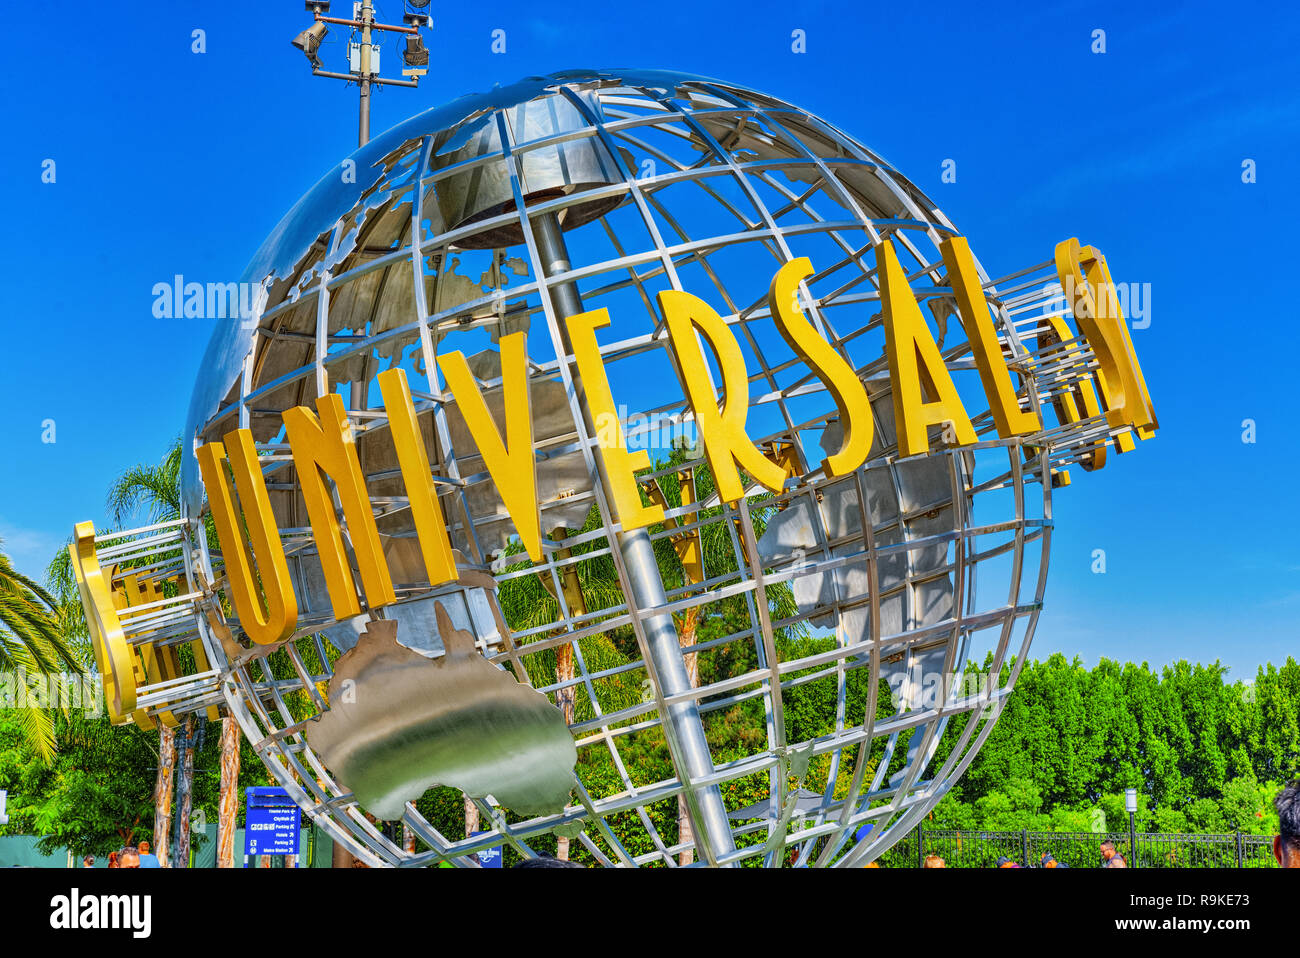 Los Angelos, California, USA - September 07, 2018: World famous park Universal Studios in Hollywood. Ball with the inscription at the entrance to the  - Stock Image